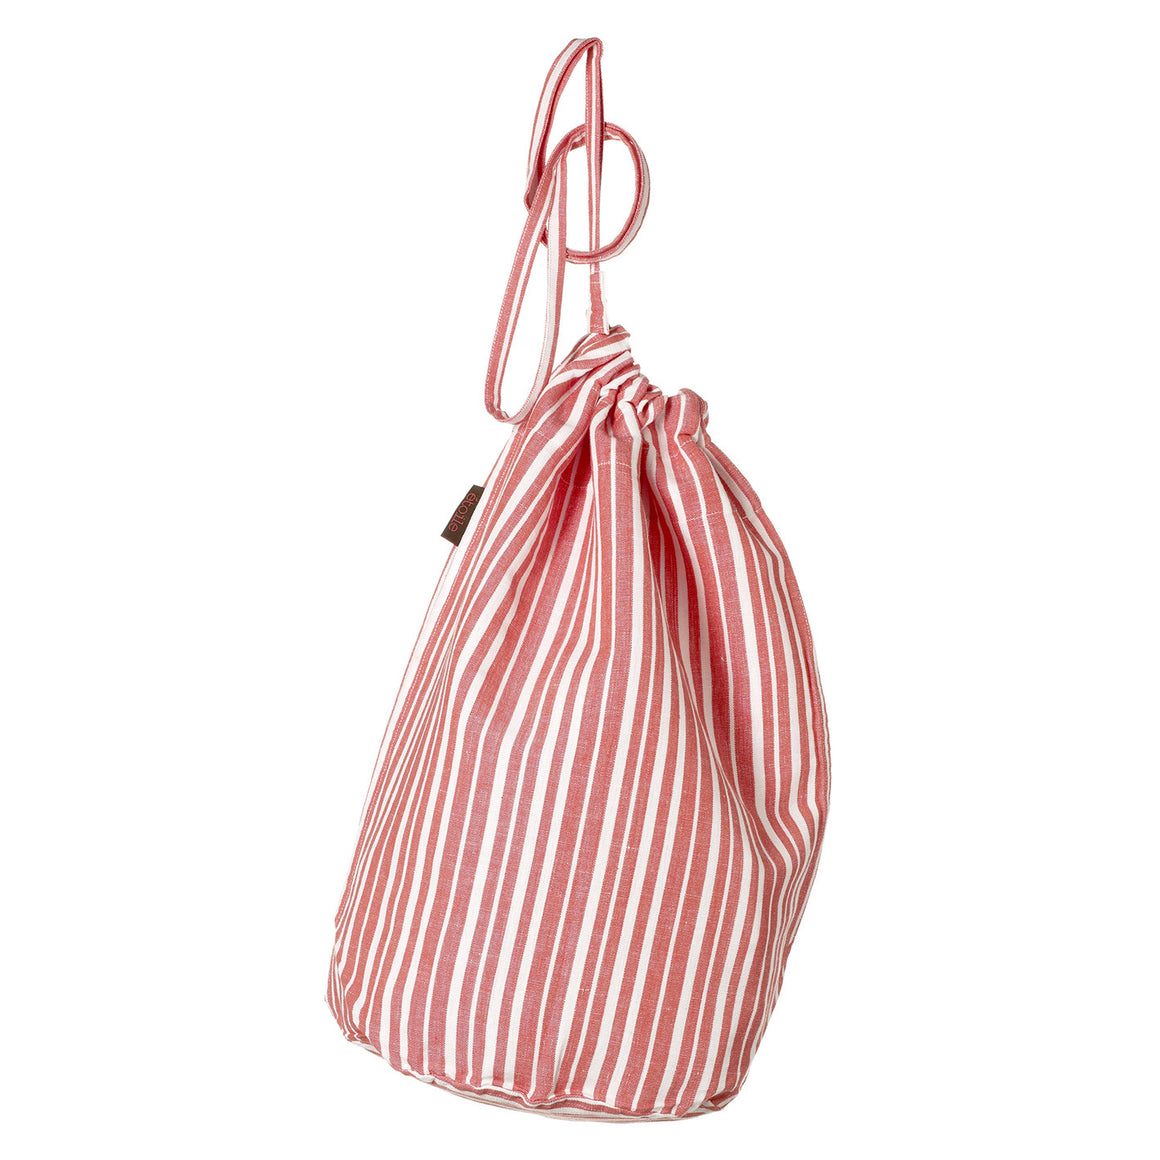 Palermo Ticking Stripe Cotton Linen Laundry Bag in Geranium Red